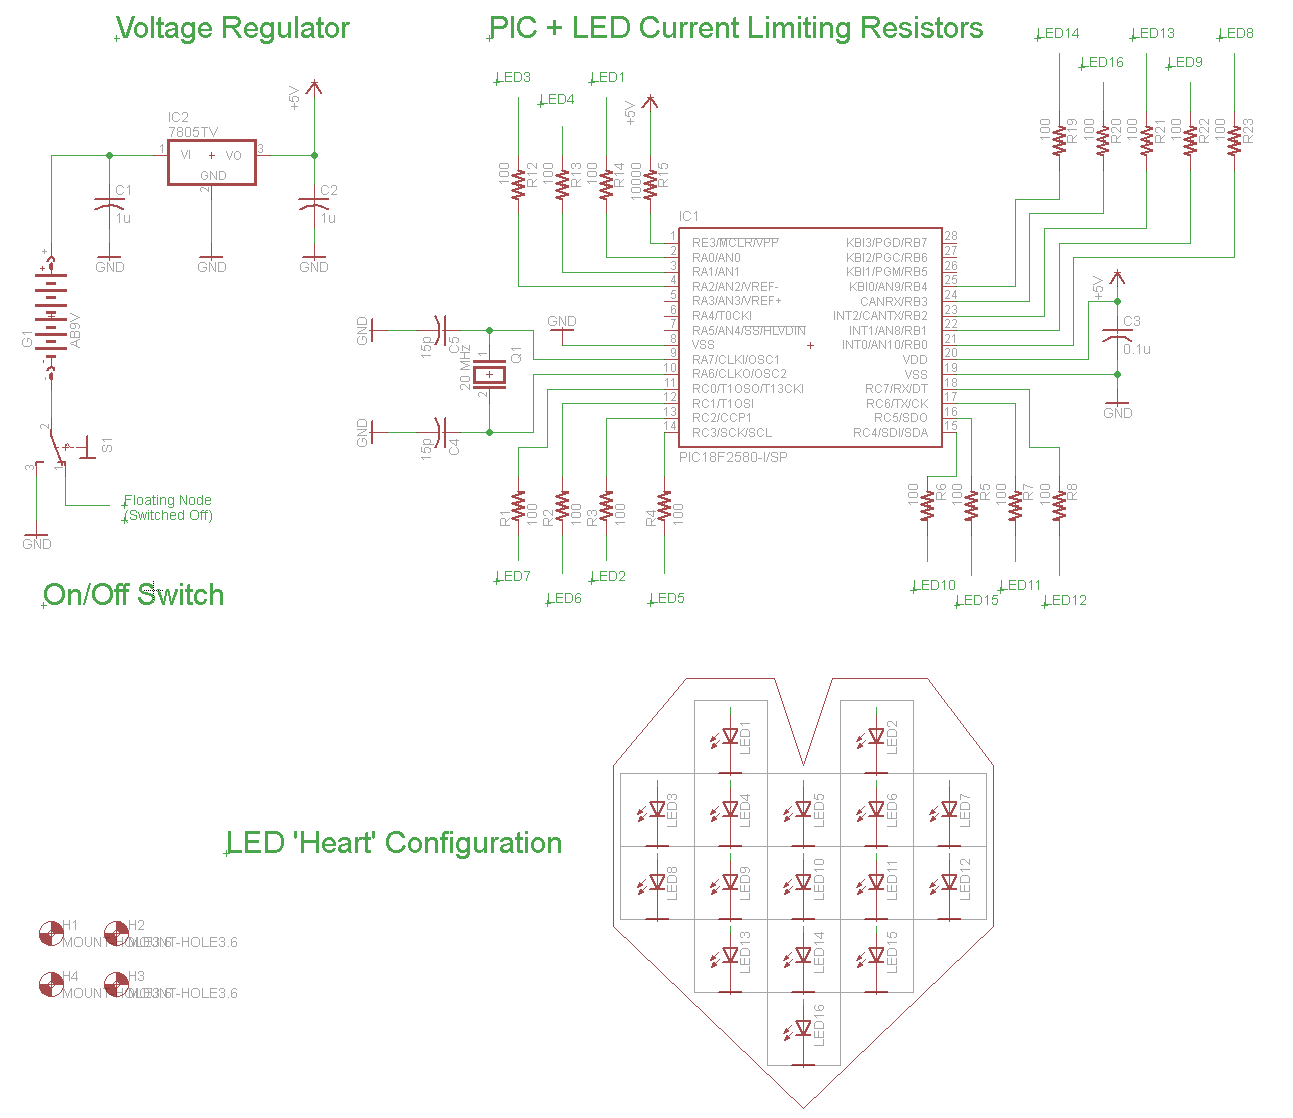 LED PWM Fading - Schematic PCB Layout | PyroElectro - News ... Led Schematic on led arduino code, windscreen wiper, strobe light, integrated circuit, led power, led pspice, led symbol, led component, led circuit, led layout, plasma display, led driver, laser diode, liquid crystal display, led display, led polarity, led board, incandescent light bulb, led wire, led wiring, solid-state lighting, led pictorial, thermal management of high-power leds, christmas lighting technology, led street light, led signs, led lamp, led breadboard, led timeline, led pinout, led diagram, black light, led datasheet,